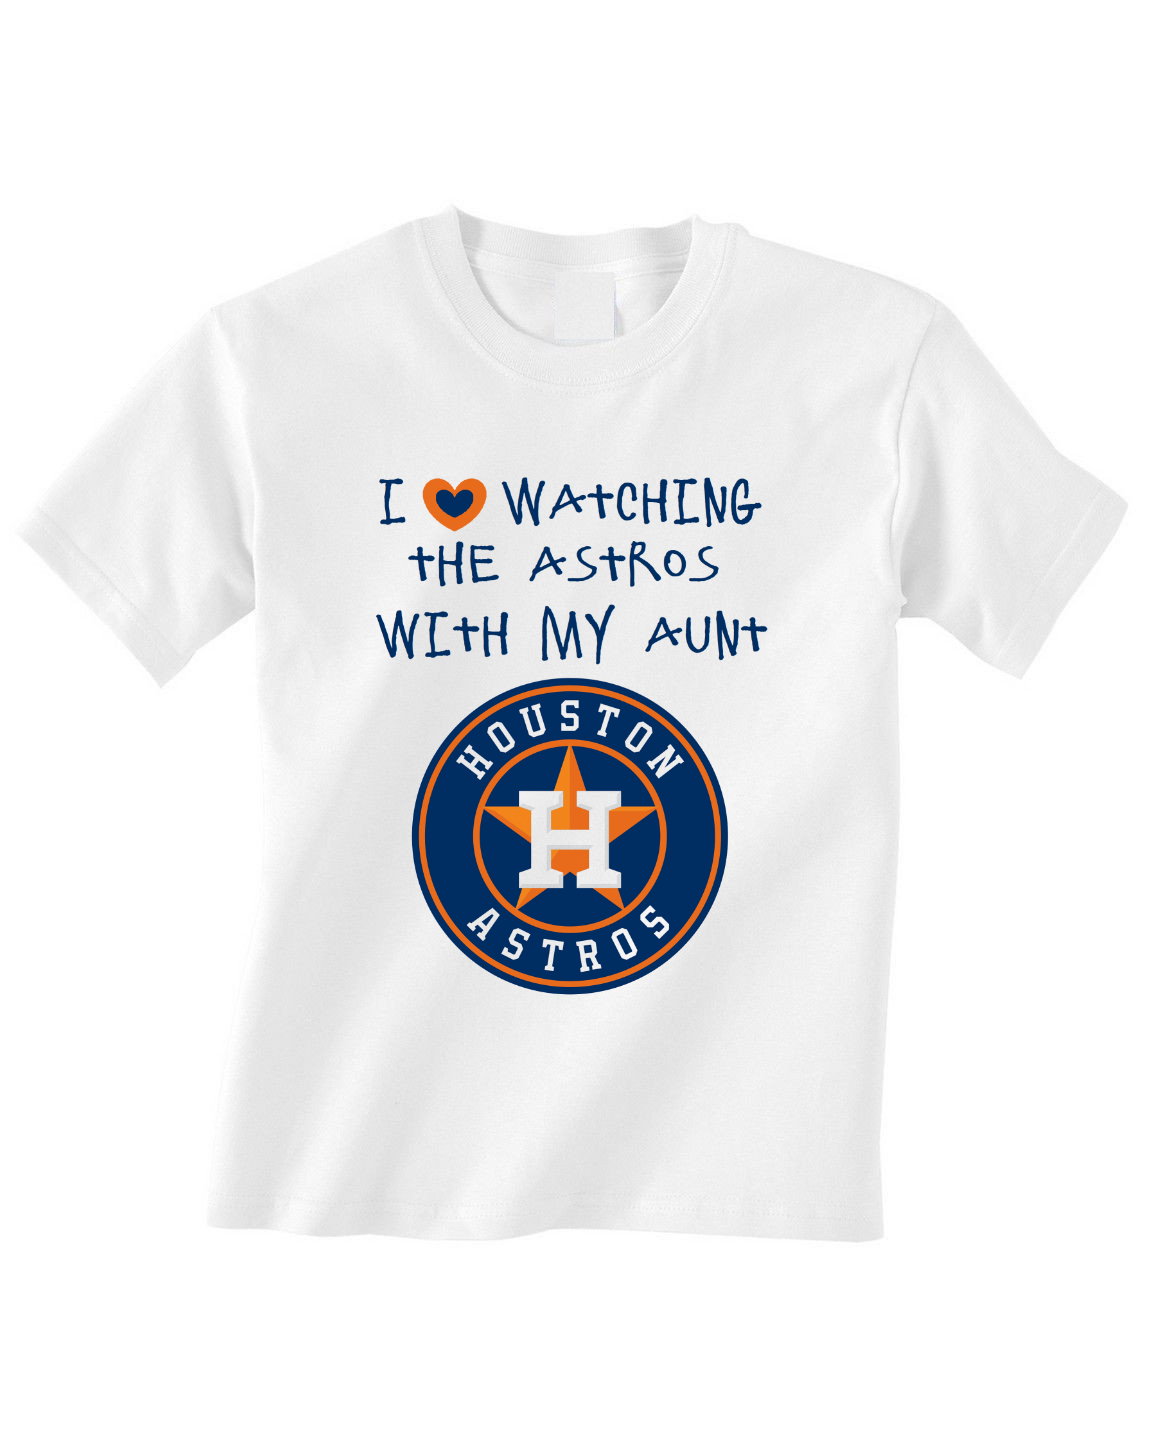 Primary image for Houston Astros Toddler Tshirt Shirt Love Watching With My Aunt